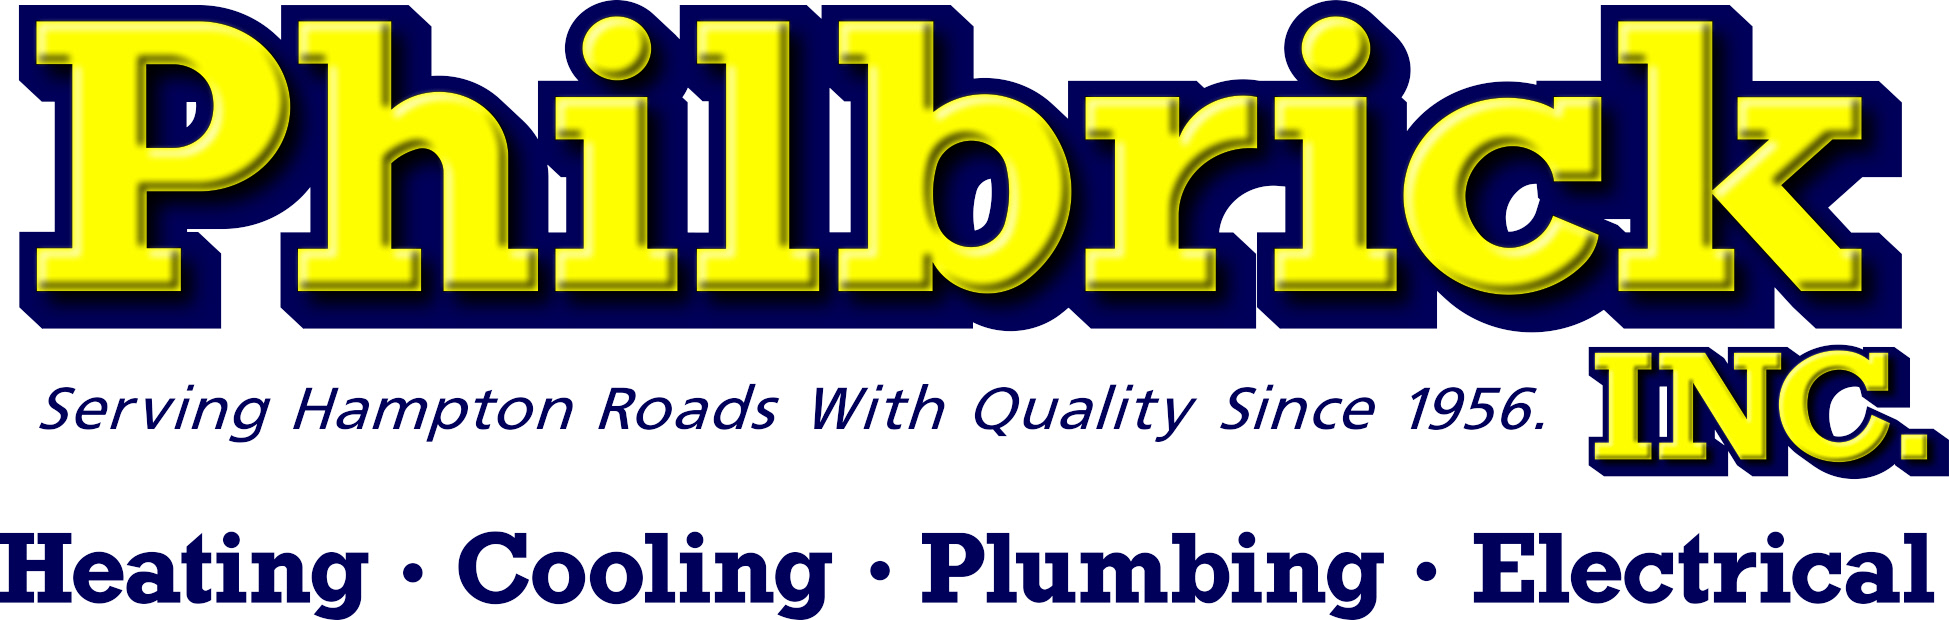 Philbrick Plumbing, Heating, Cooling & Electrical